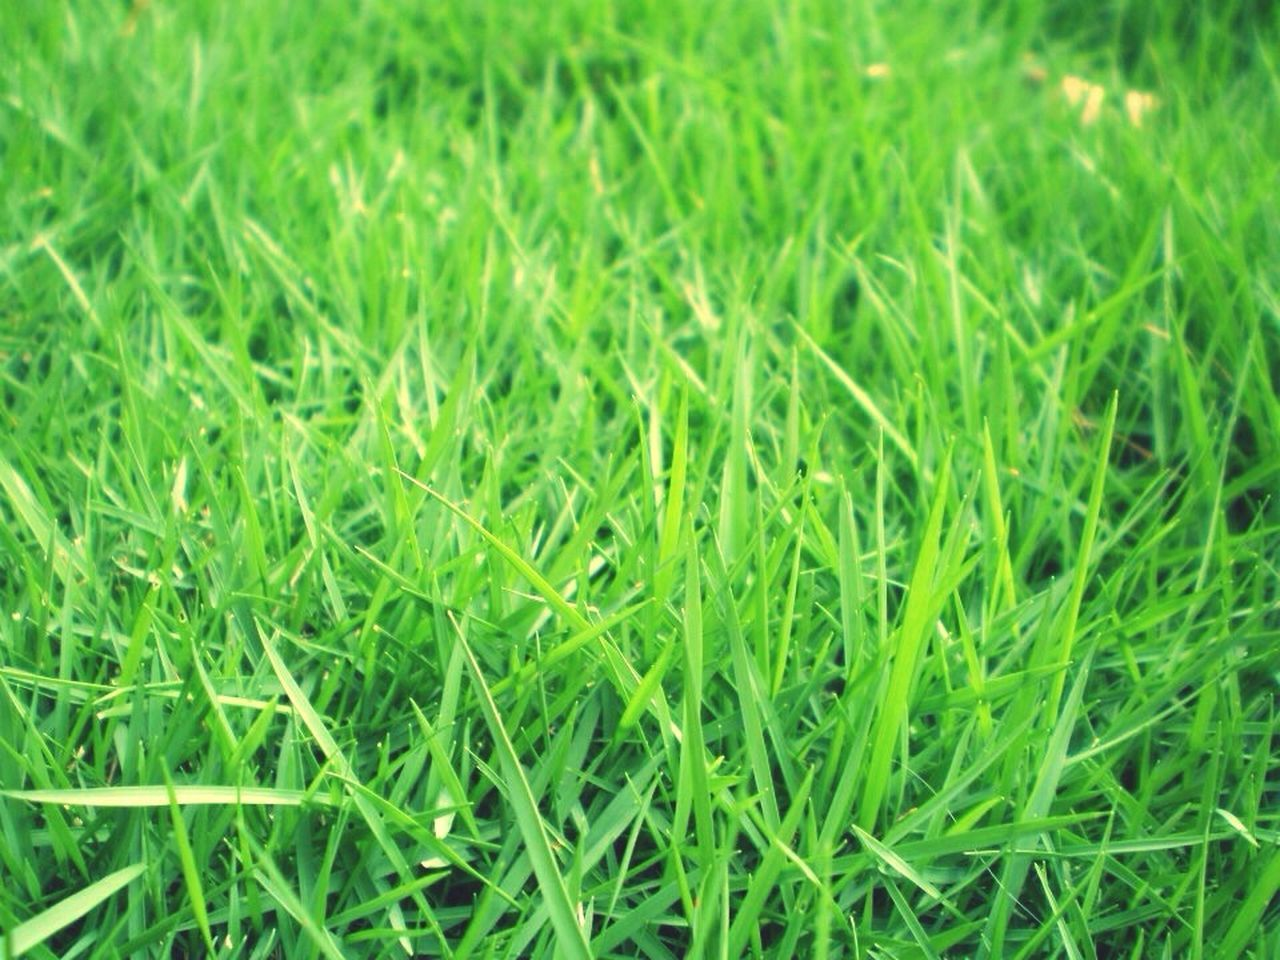 grass, green color, field, full frame, backgrounds, nature, no people, day, outdoors, close-up